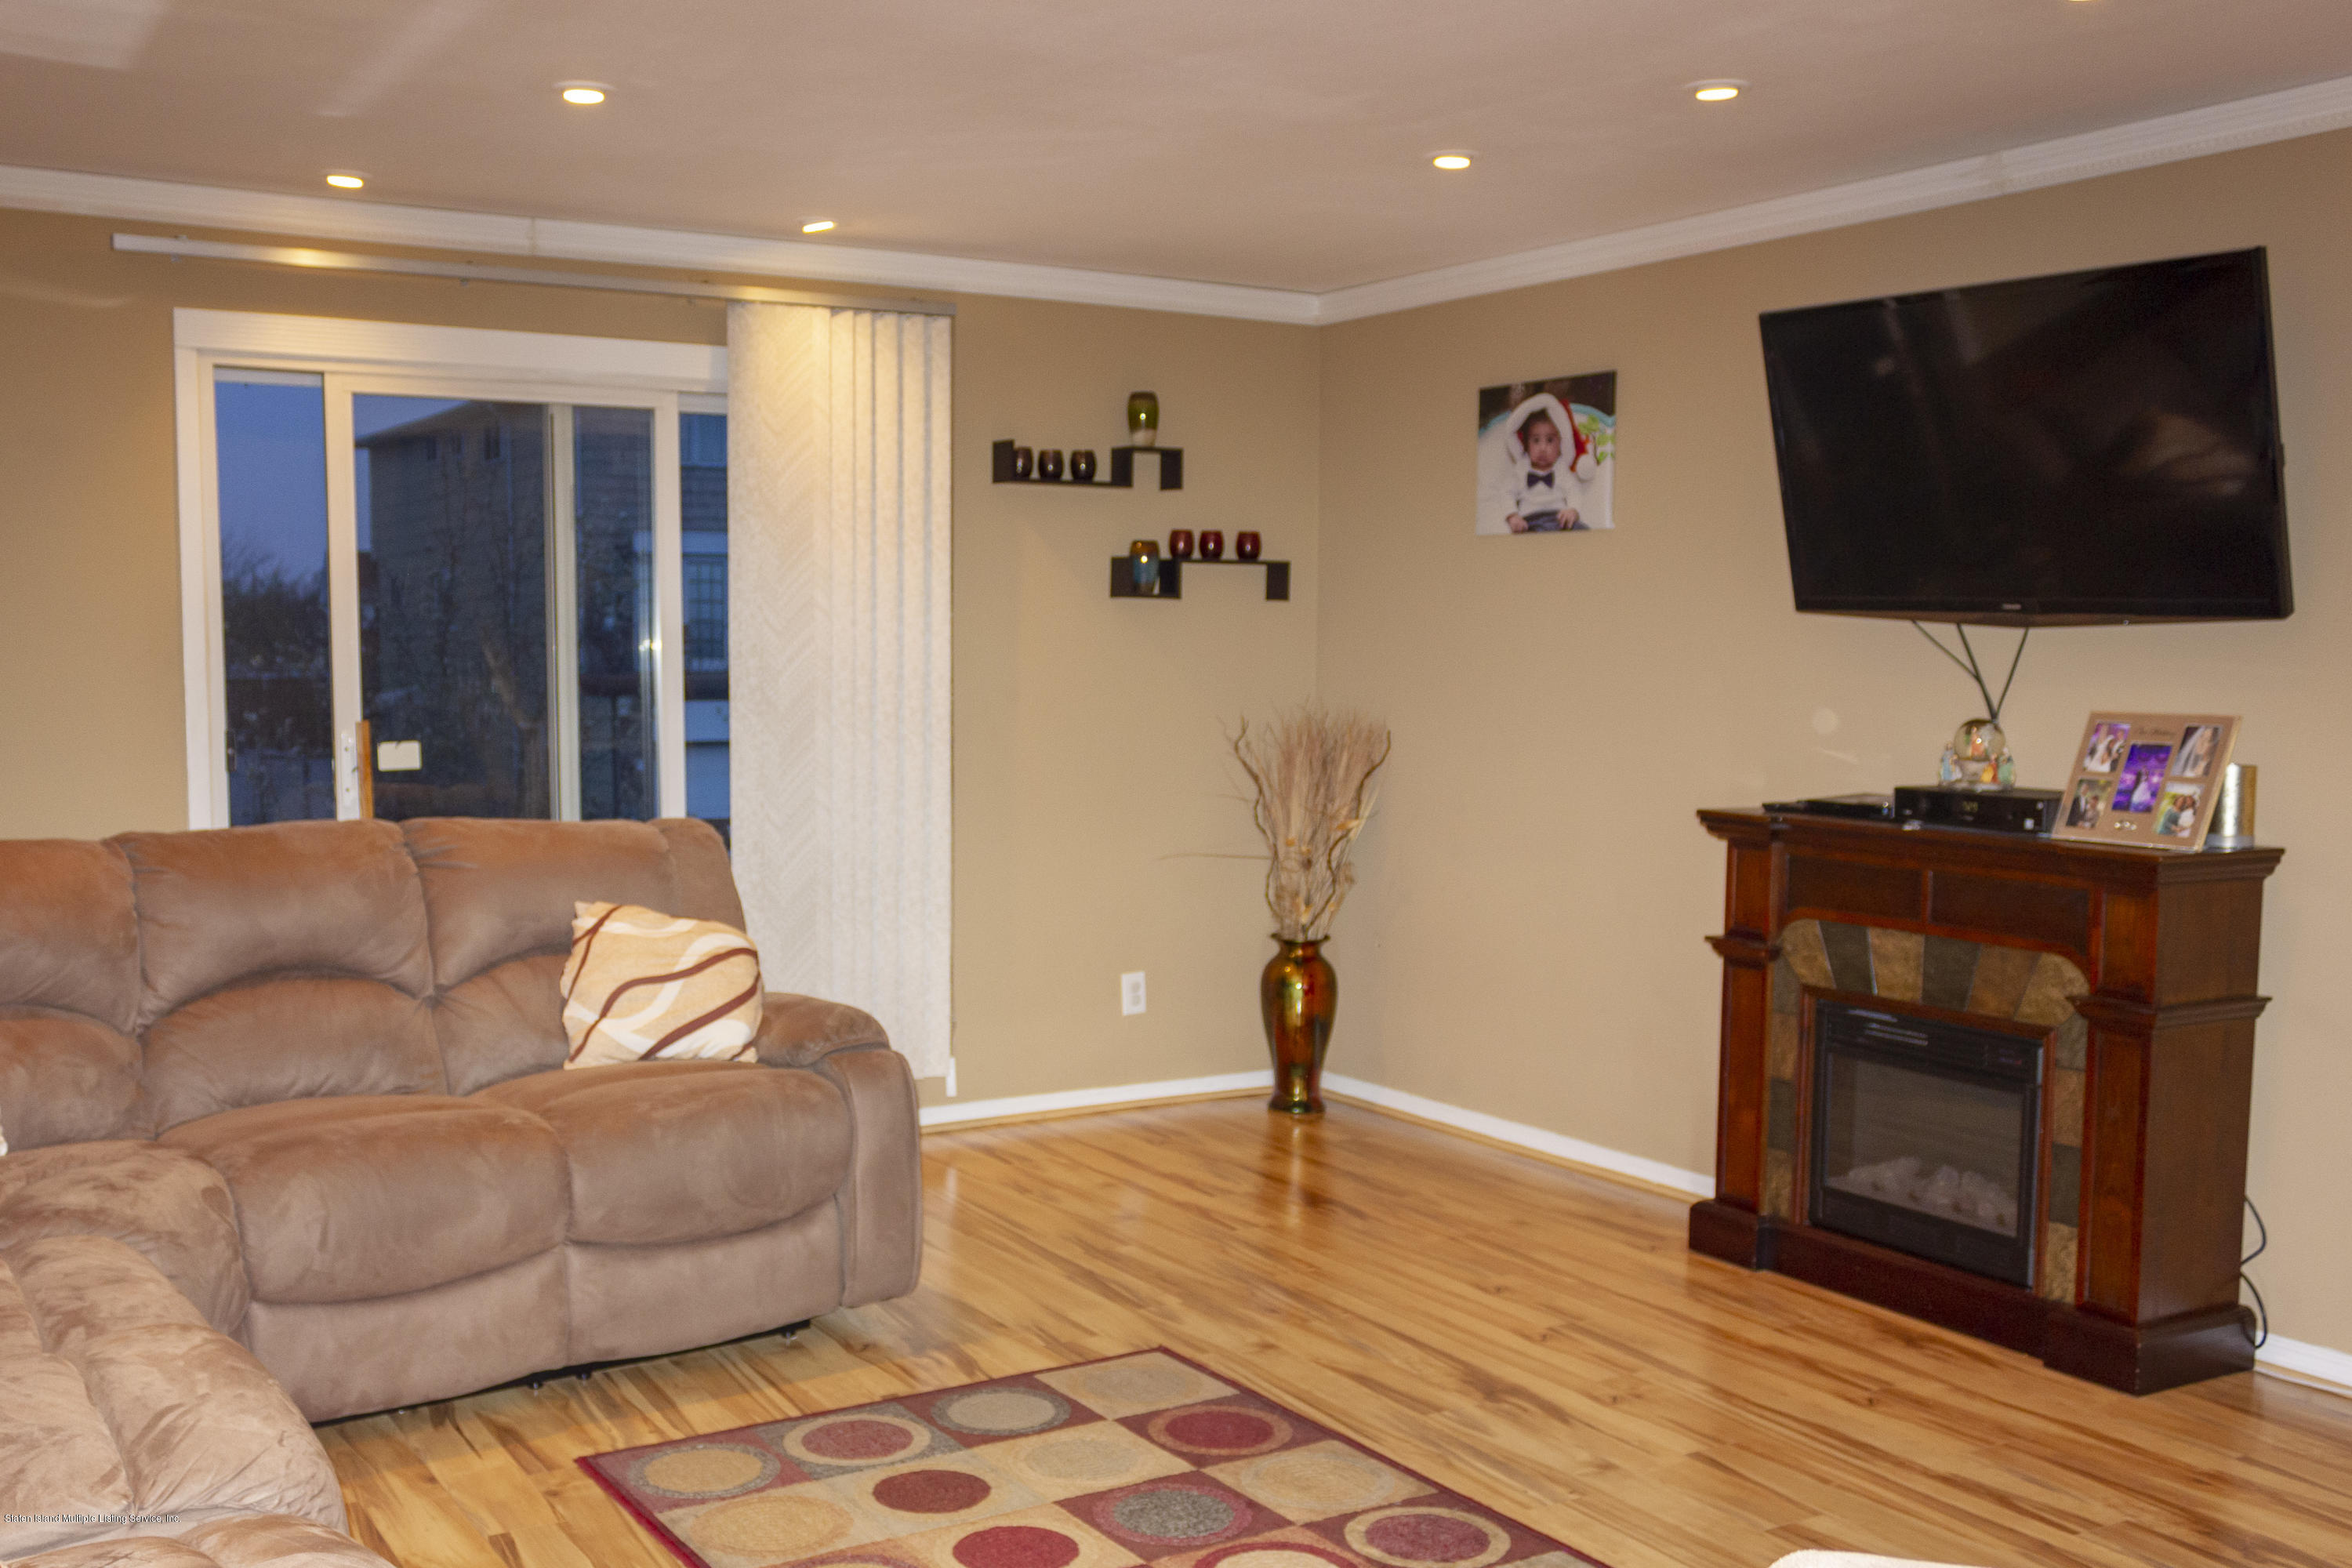 Single Family - Semi-Attached 59 Goller Place  Staten Island, NY 10314, MLS-1127931-11